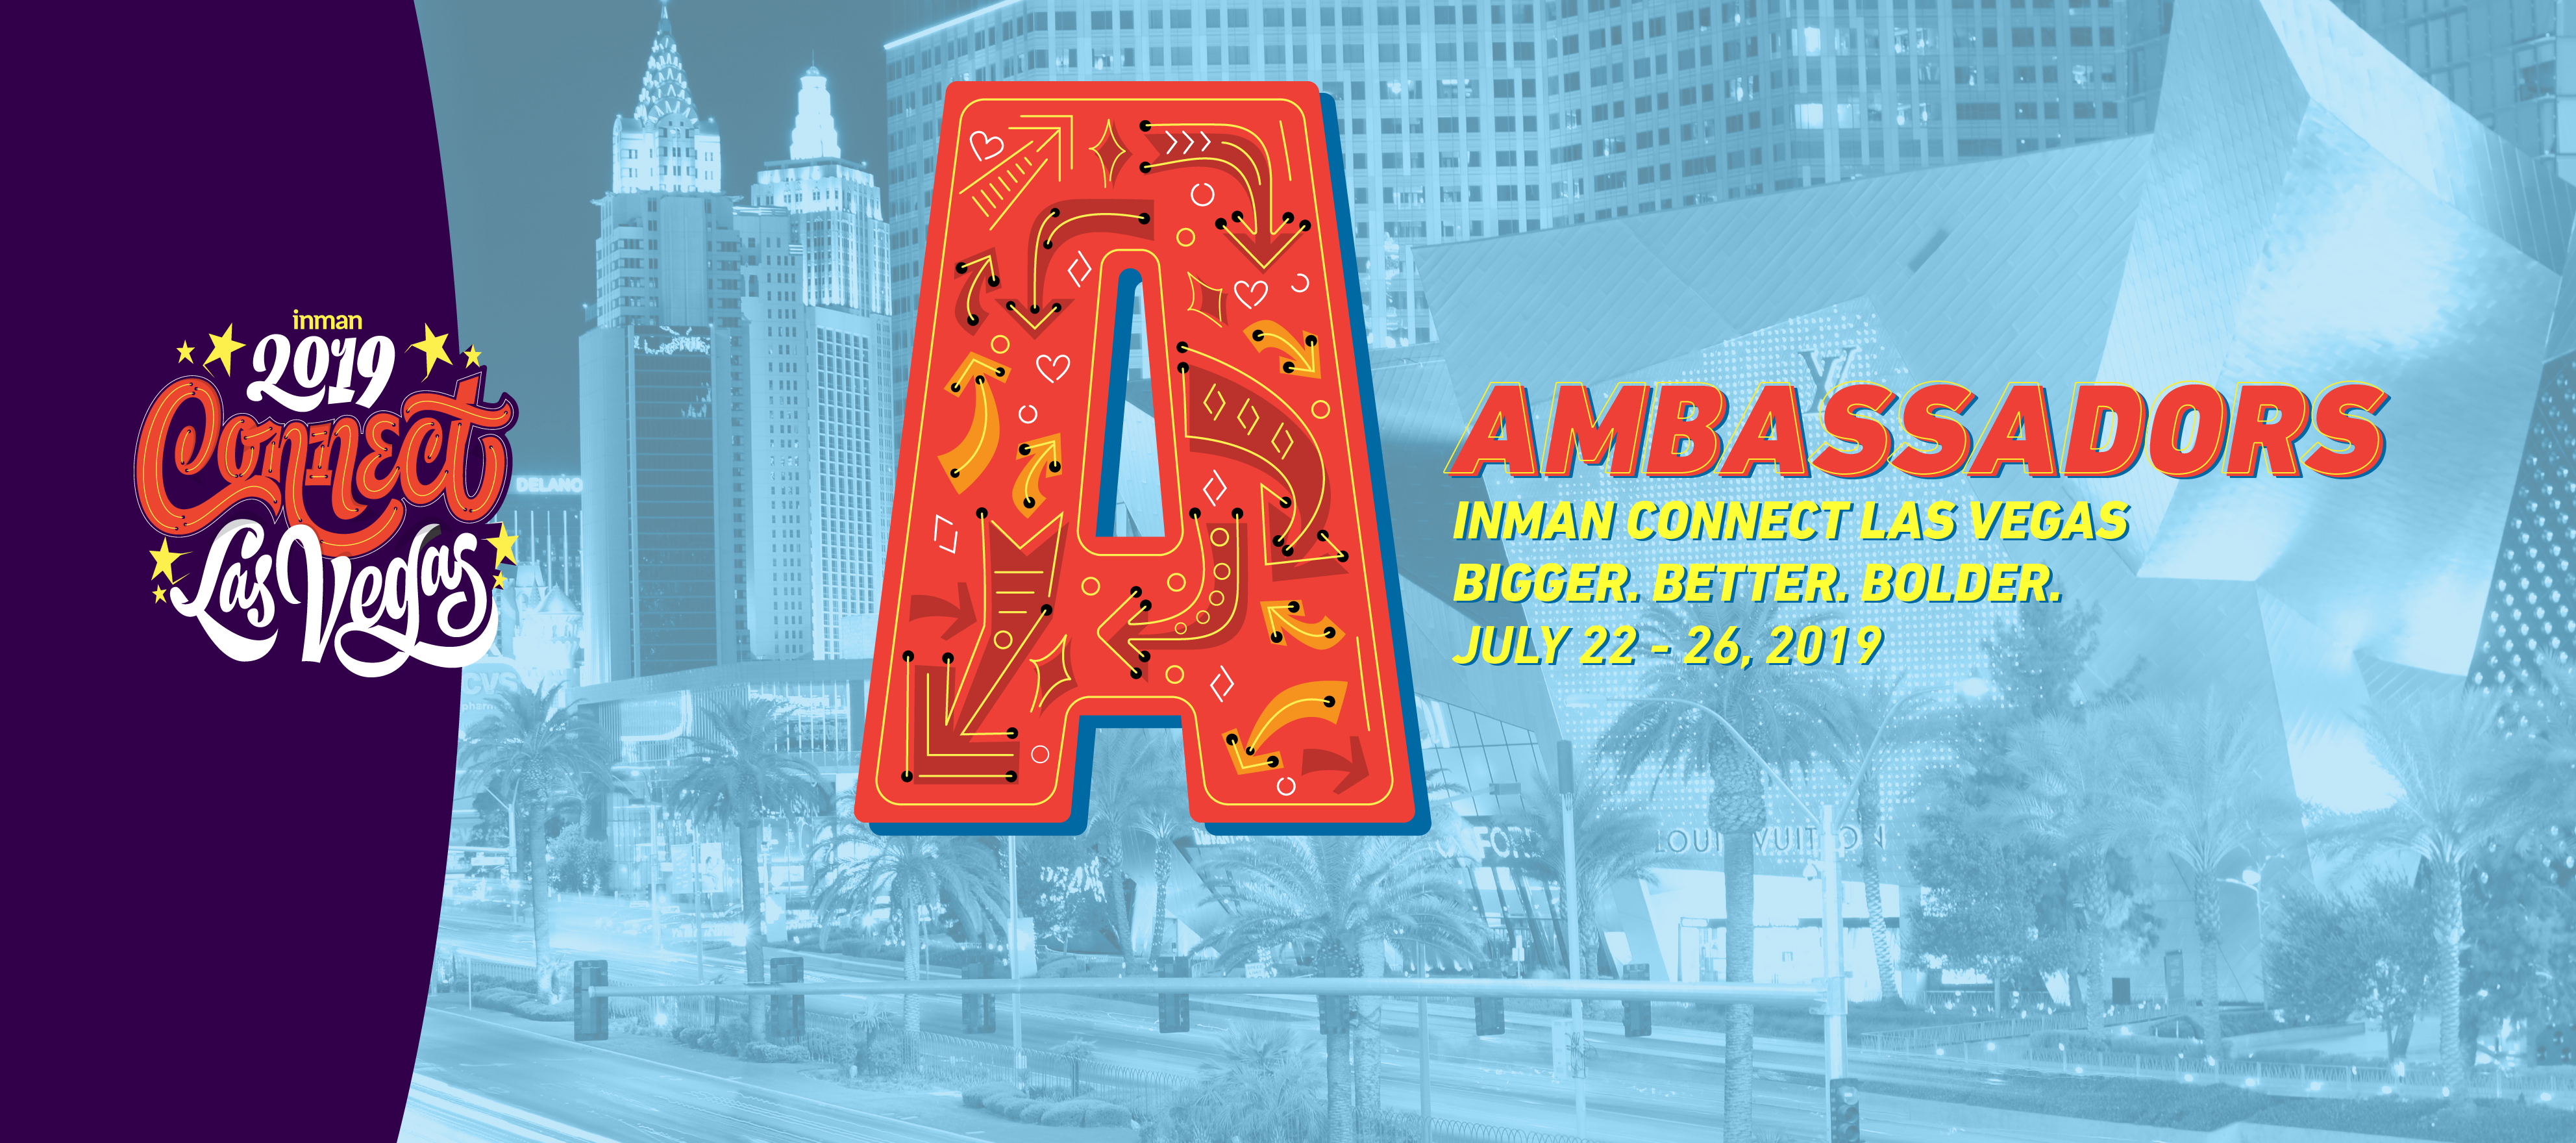 Ambassadors announced for Inman Connect Las Vegas 2019